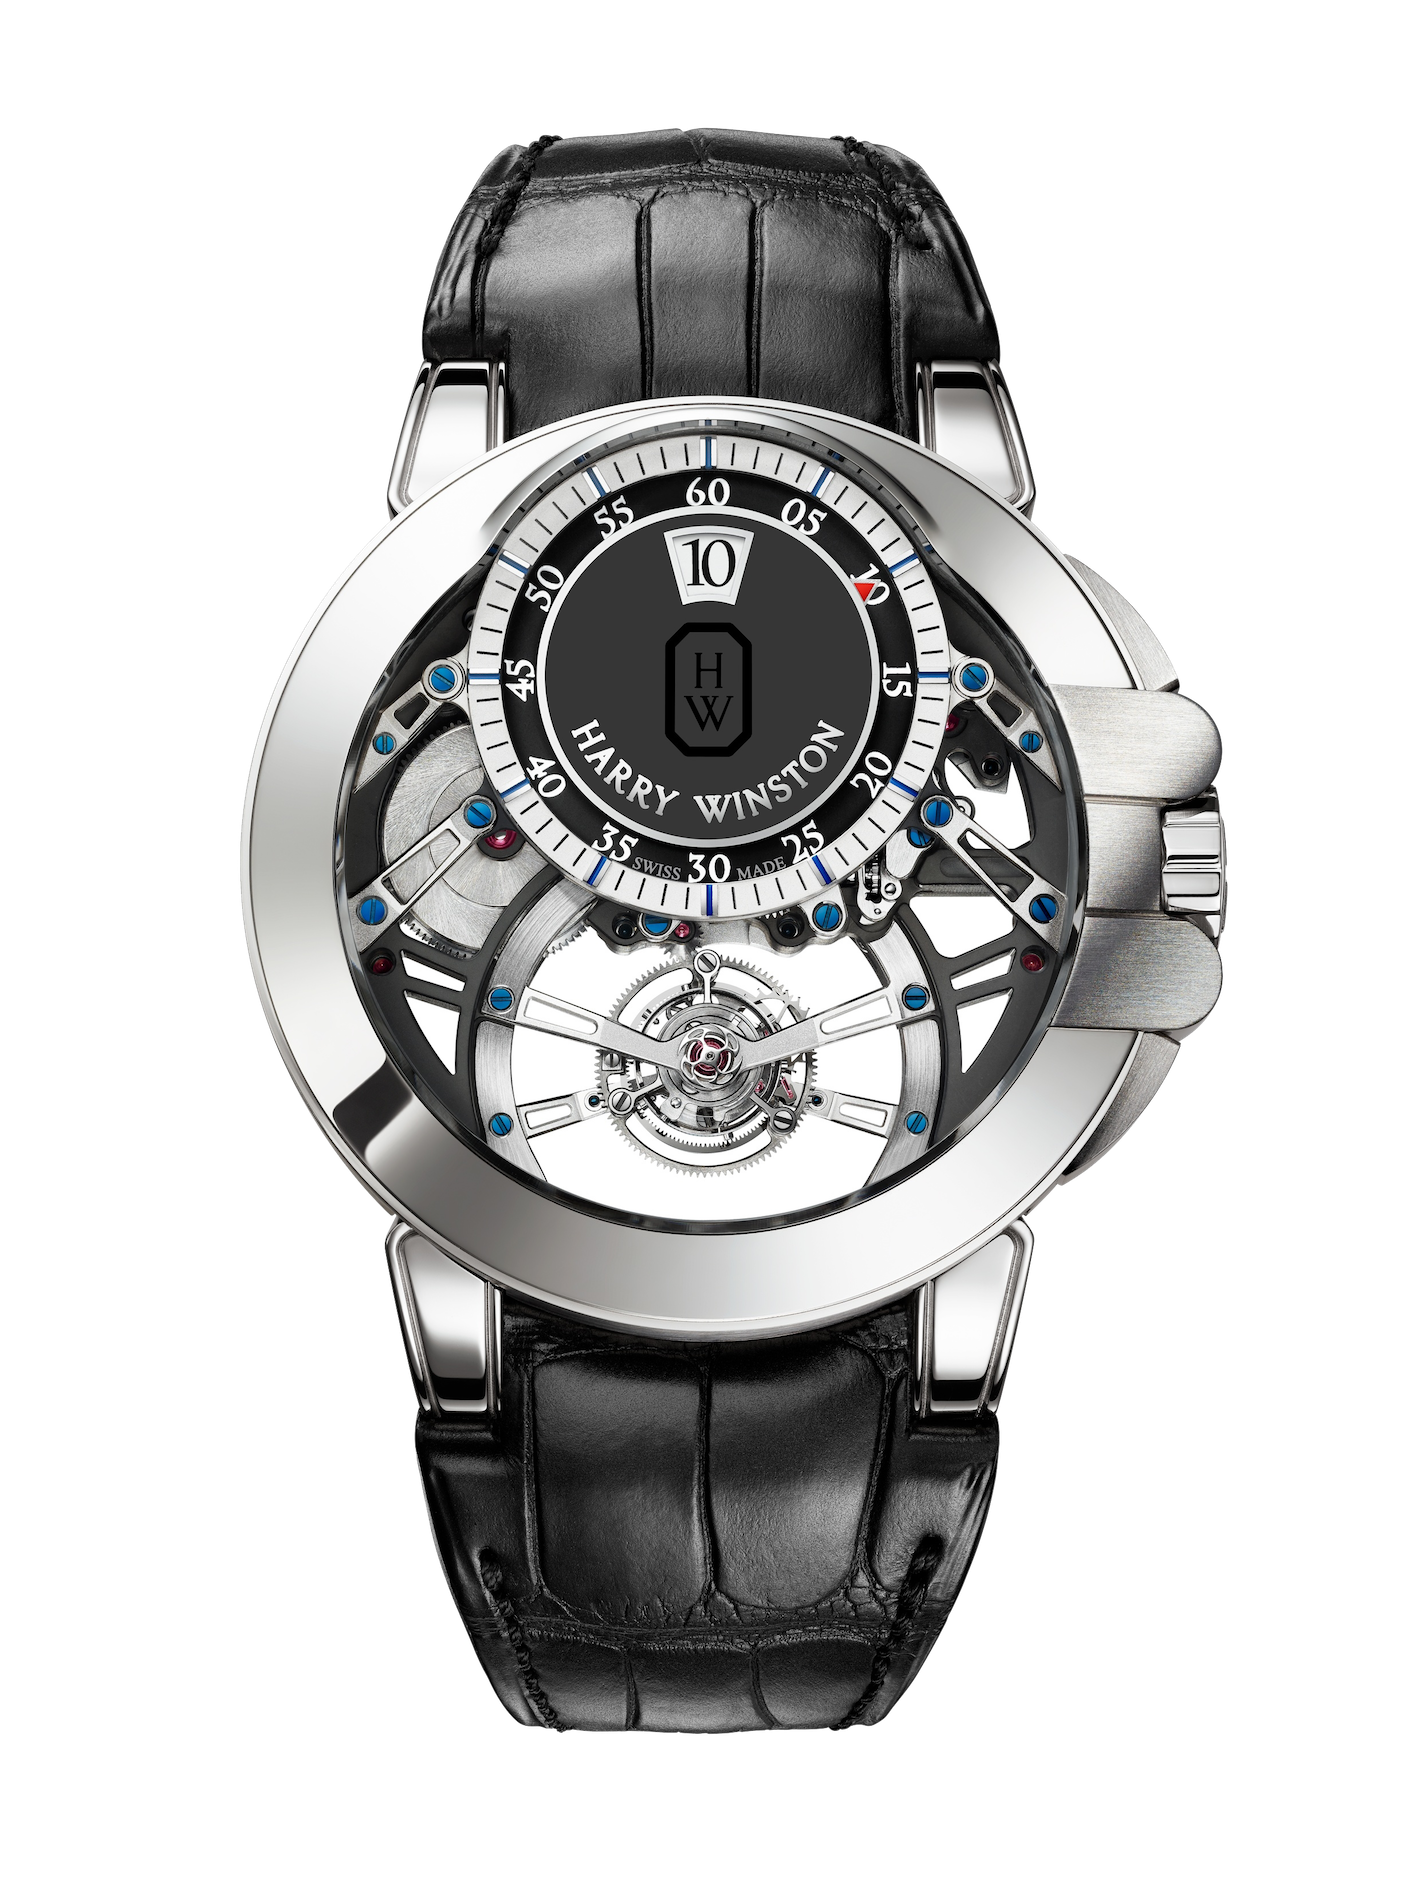 Harry Winston Ocean Tourbillon Jumping Hour